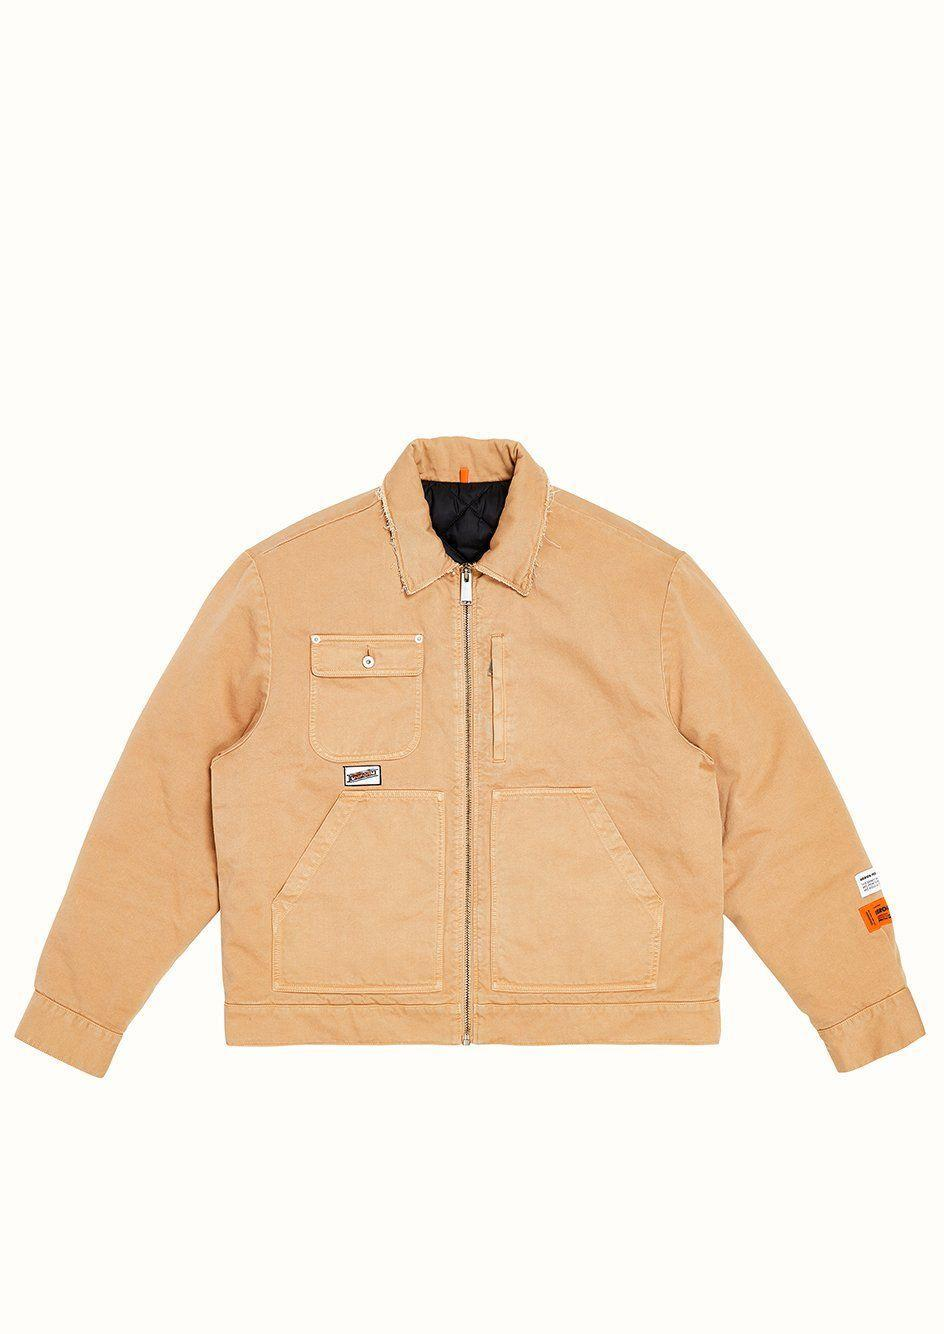 "<p><strong>Heron Preston </strong></p><p>heronpreston.com</p><p><strong>$1100.00</strong></p><p><a href=""https://www.heronpreston.com/en/US/men/products/hmea052f20fab0026300"" rel=""nofollow noopener"" target=""_blank"" data-ylk=""slk:Shop Now"" class=""link rapid-noclick-resp"">Shop Now</a></p><p>A failsafe layering piece, this jacket feature crisp pockets for stowing away small essentials.</p>"